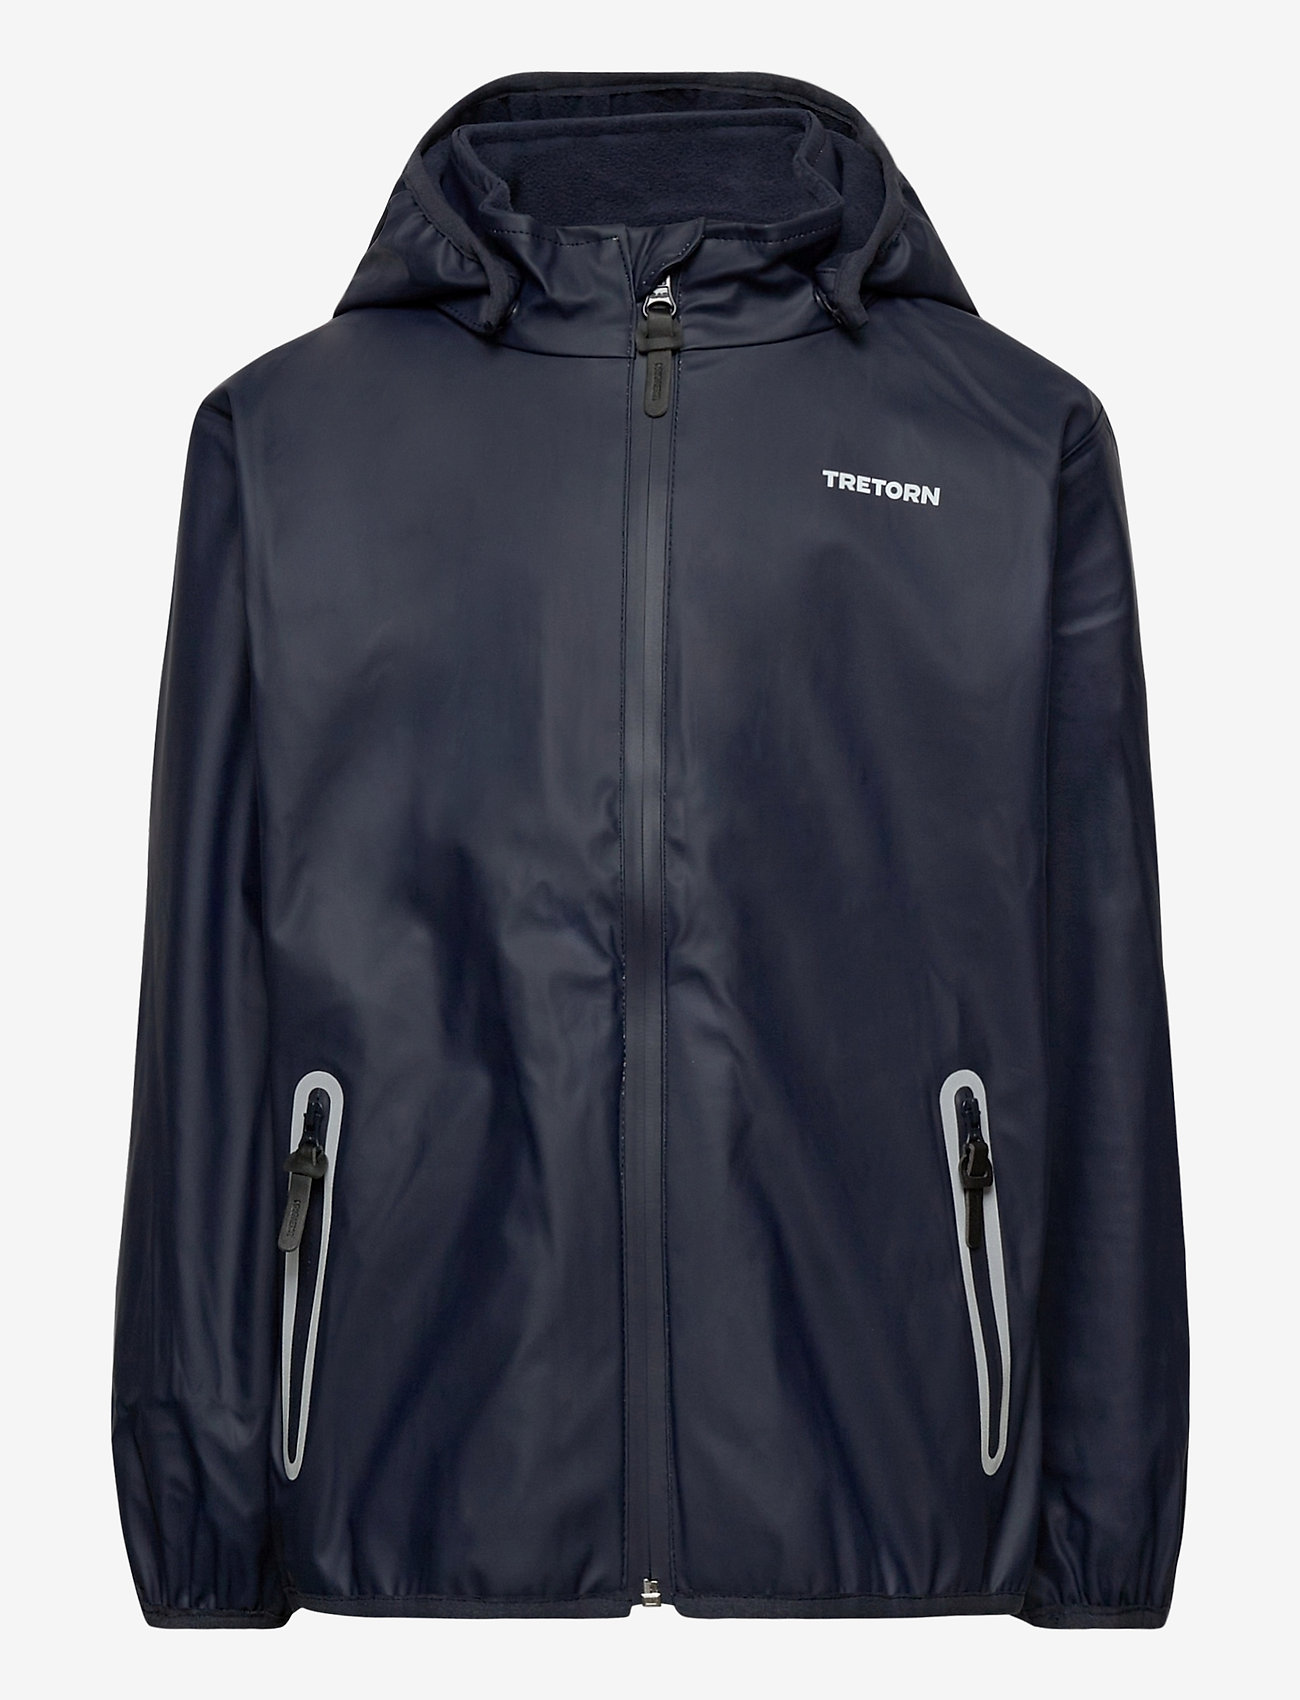 Tretorn - AKTIV FLEECE JACKET - jassen - 080/navy - 0